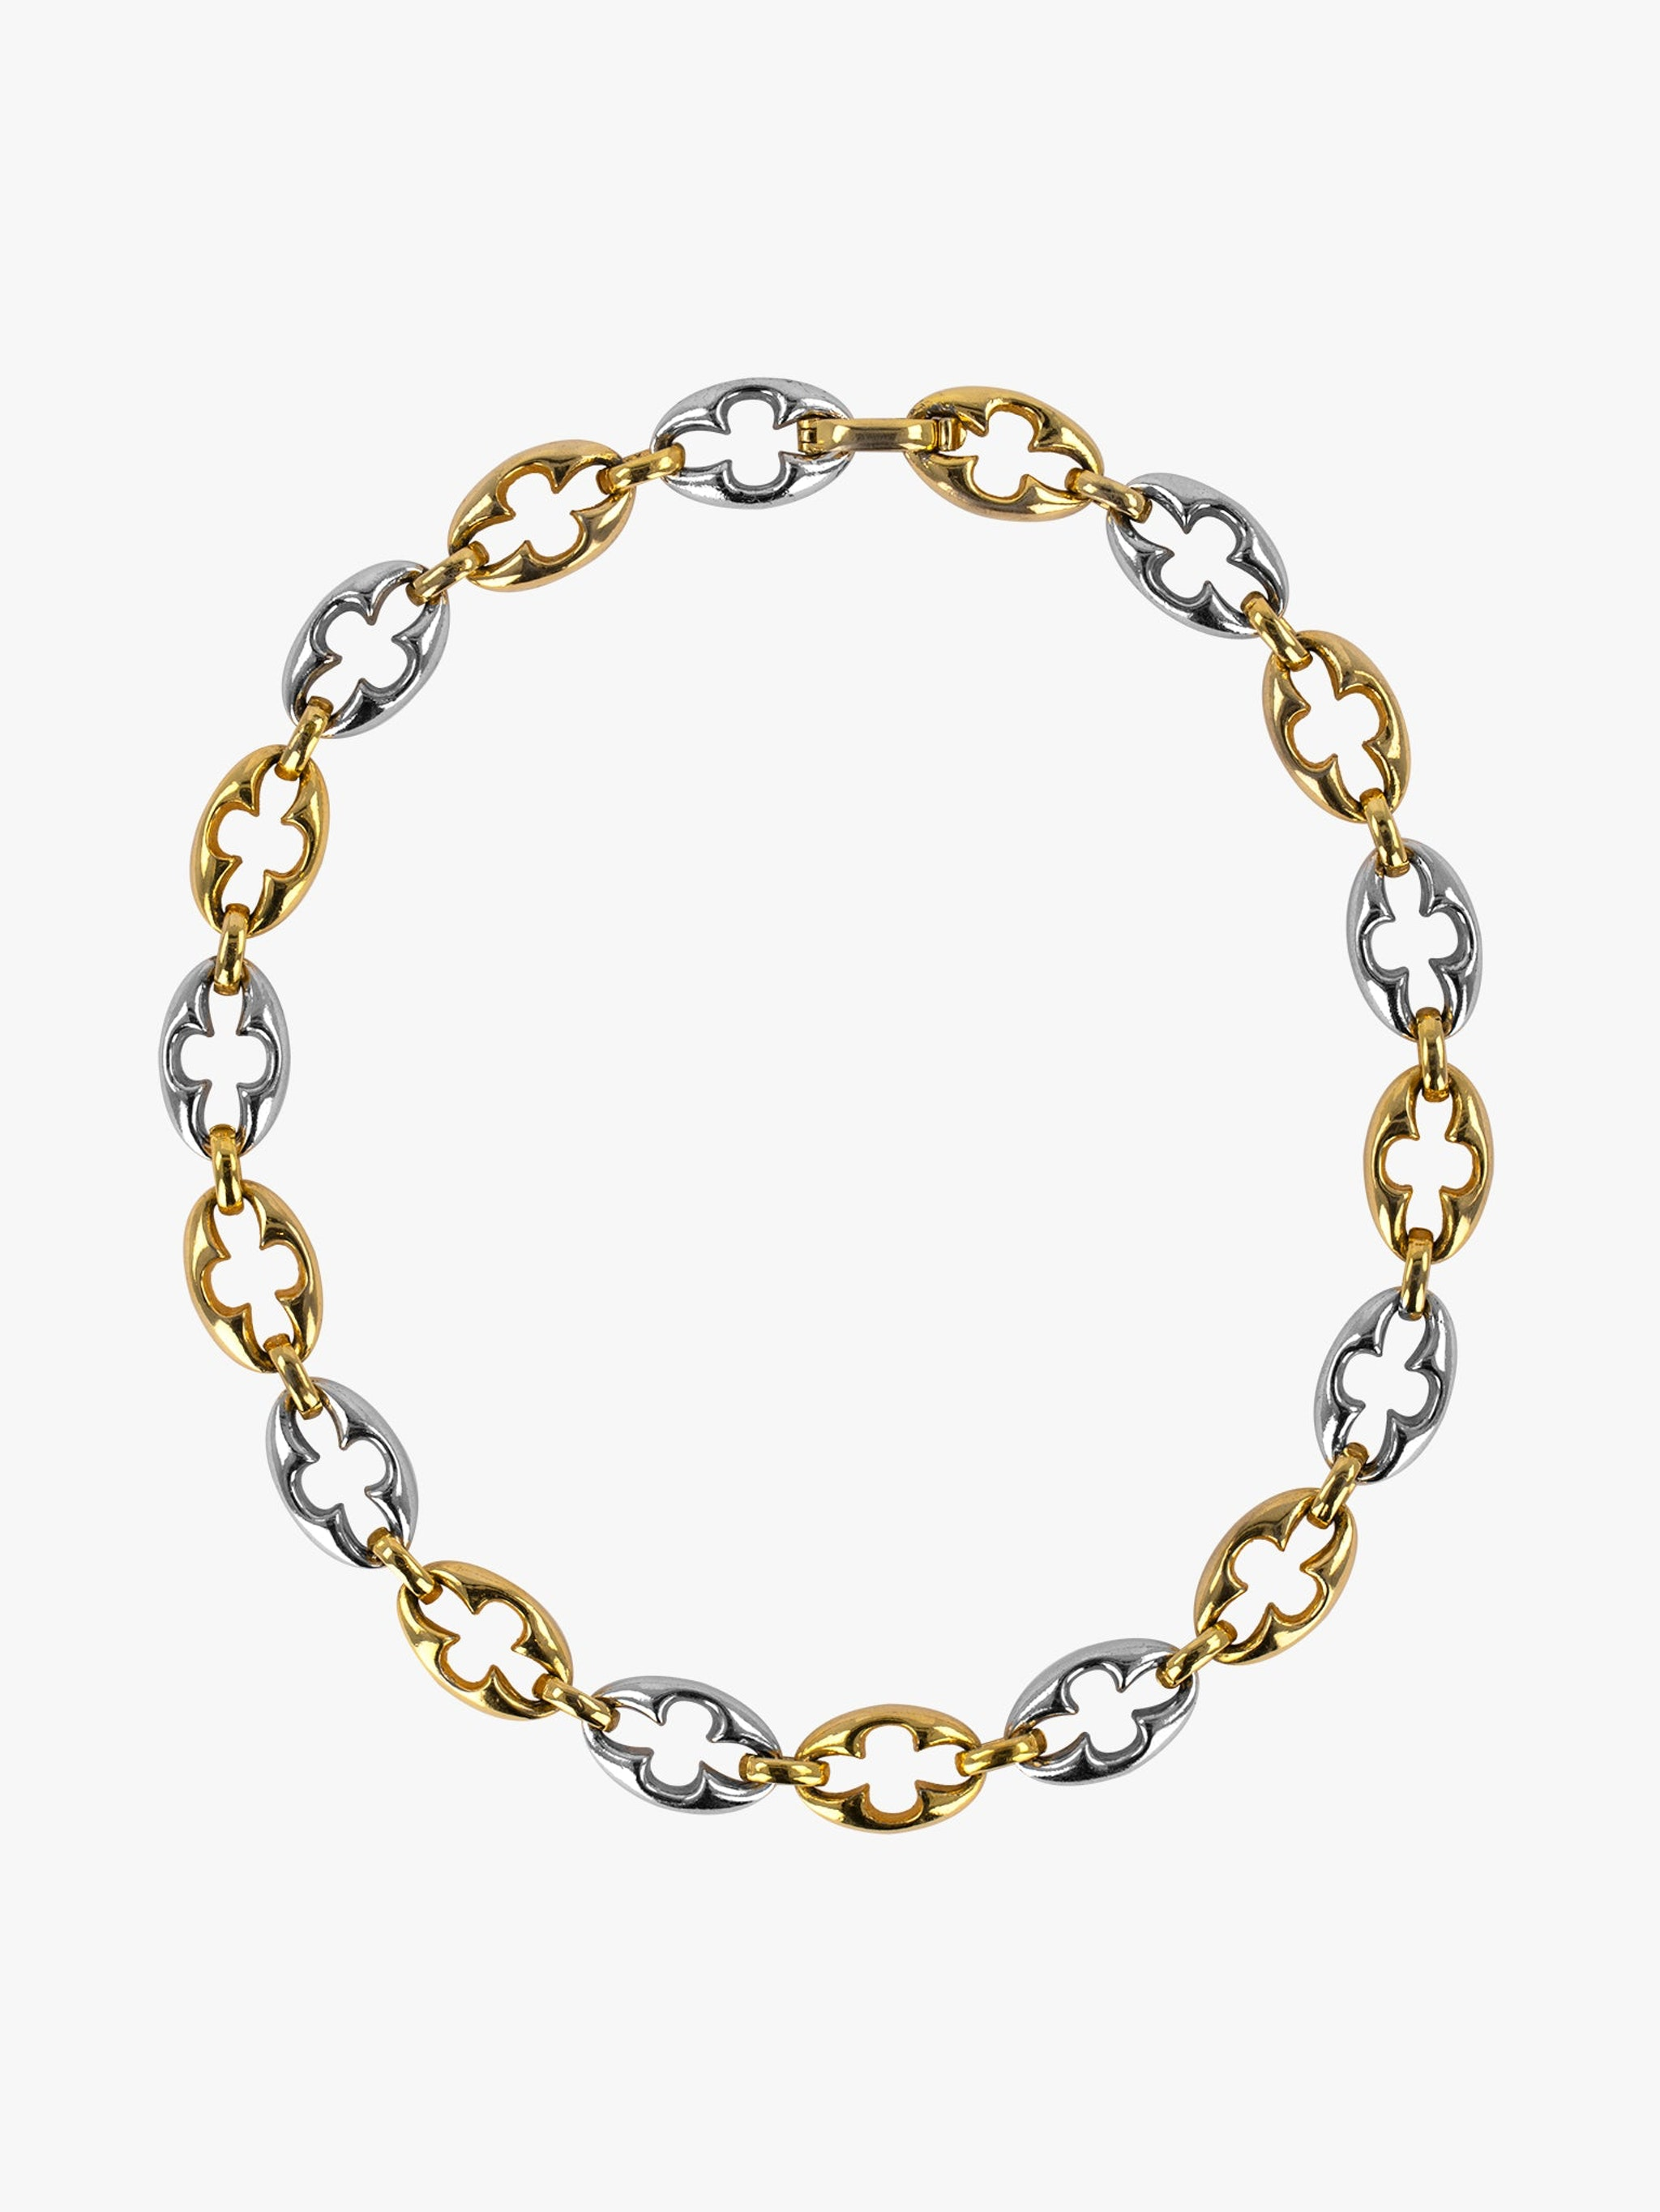 Dior gold and gunmetal links chain necklace photo 1